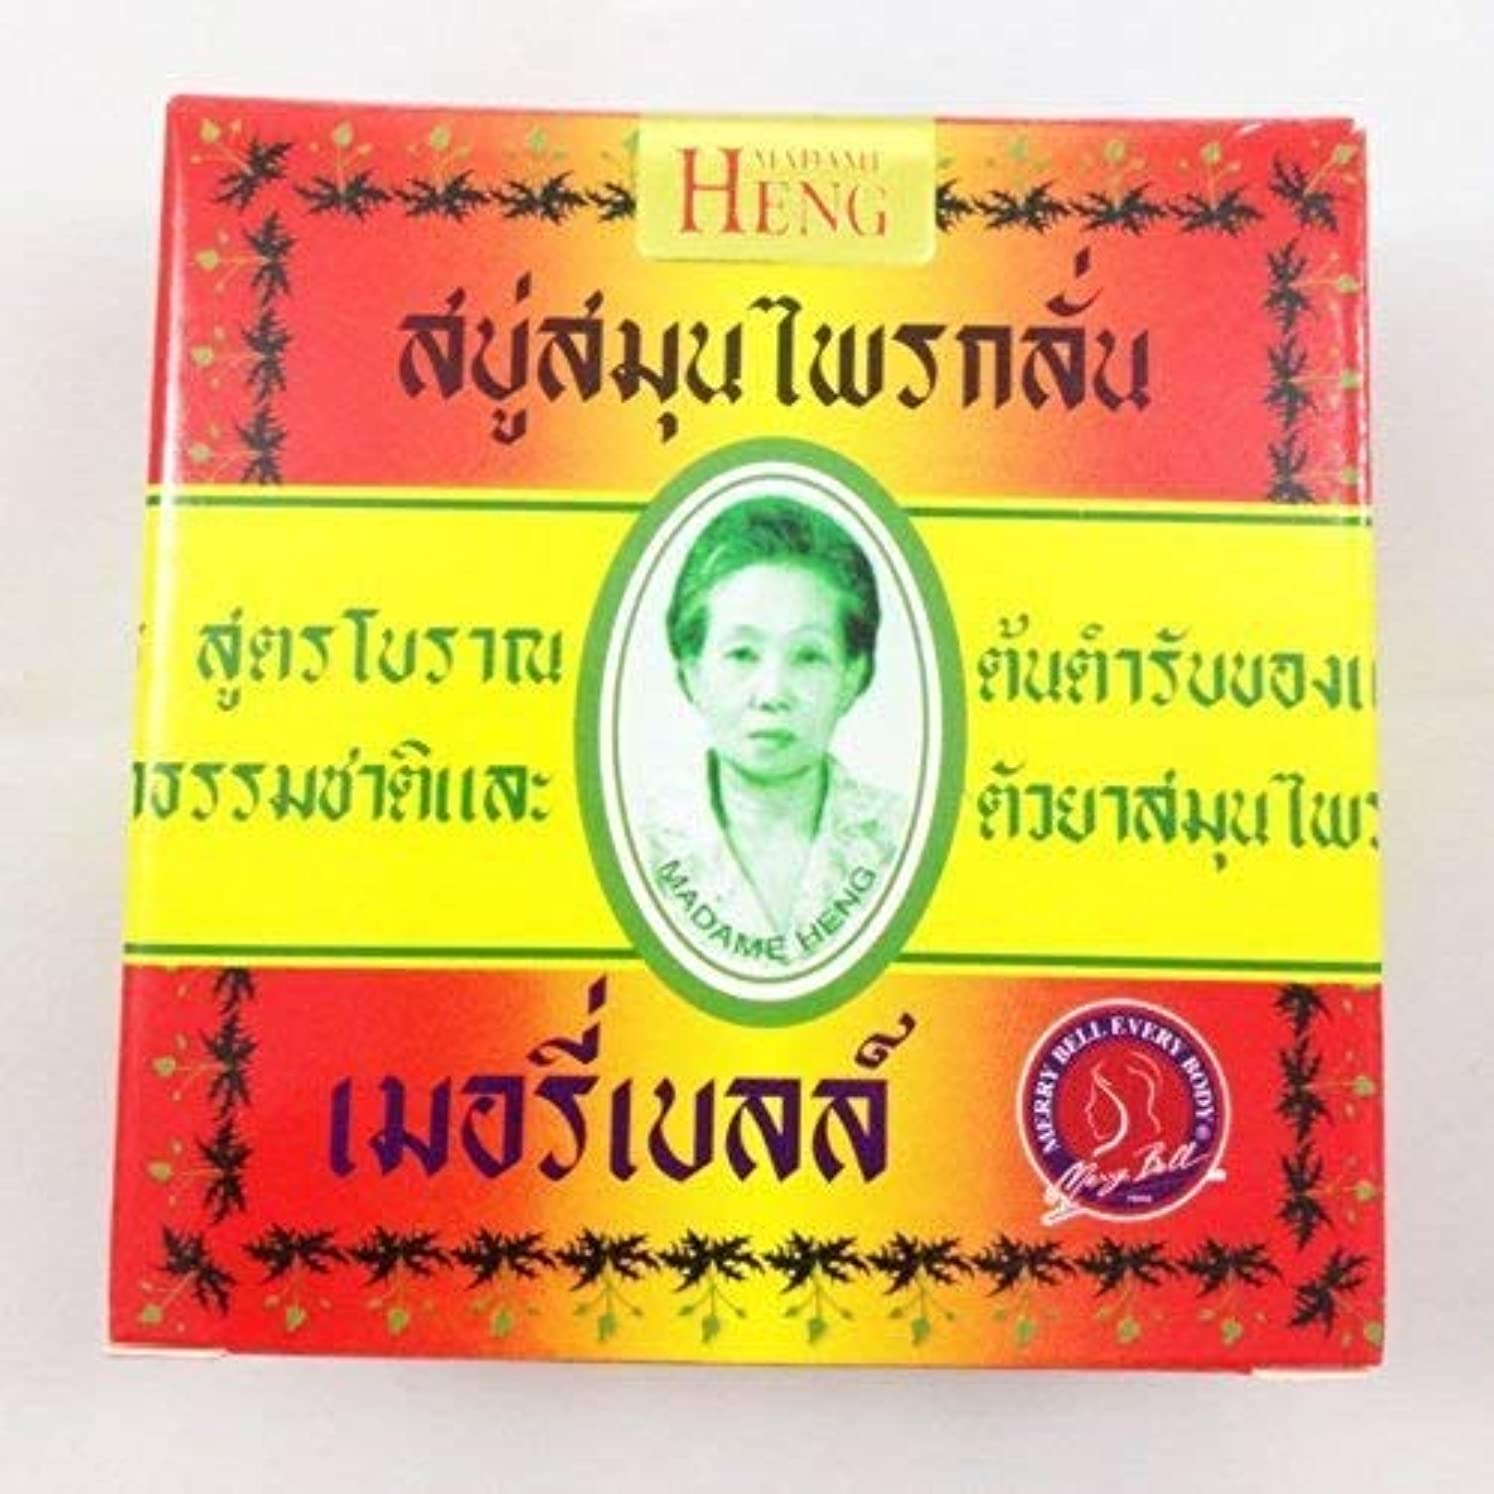 洪水ポゴスティックジャンプ目の前のMadame Heng Thai Original Natural Herbal Soap Bar Made in Thailand 160gx2pcs by Ni Yom Thai shop